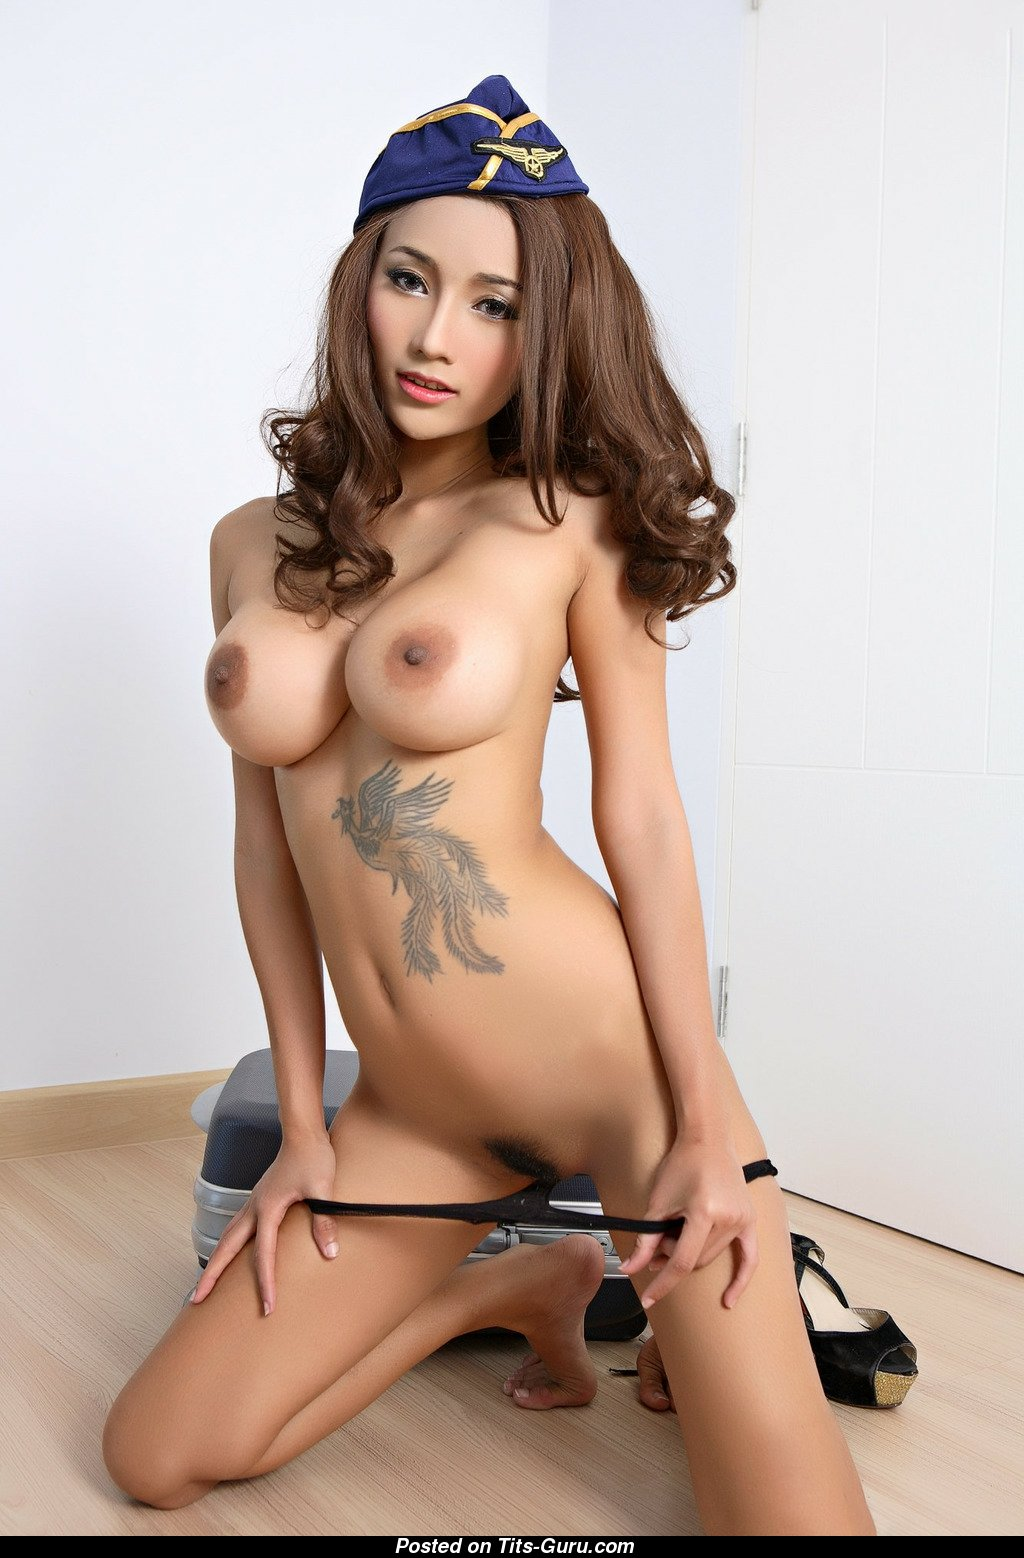 Ramita - Asian Girl With Exposed Real H Size Chest, Giant -1623